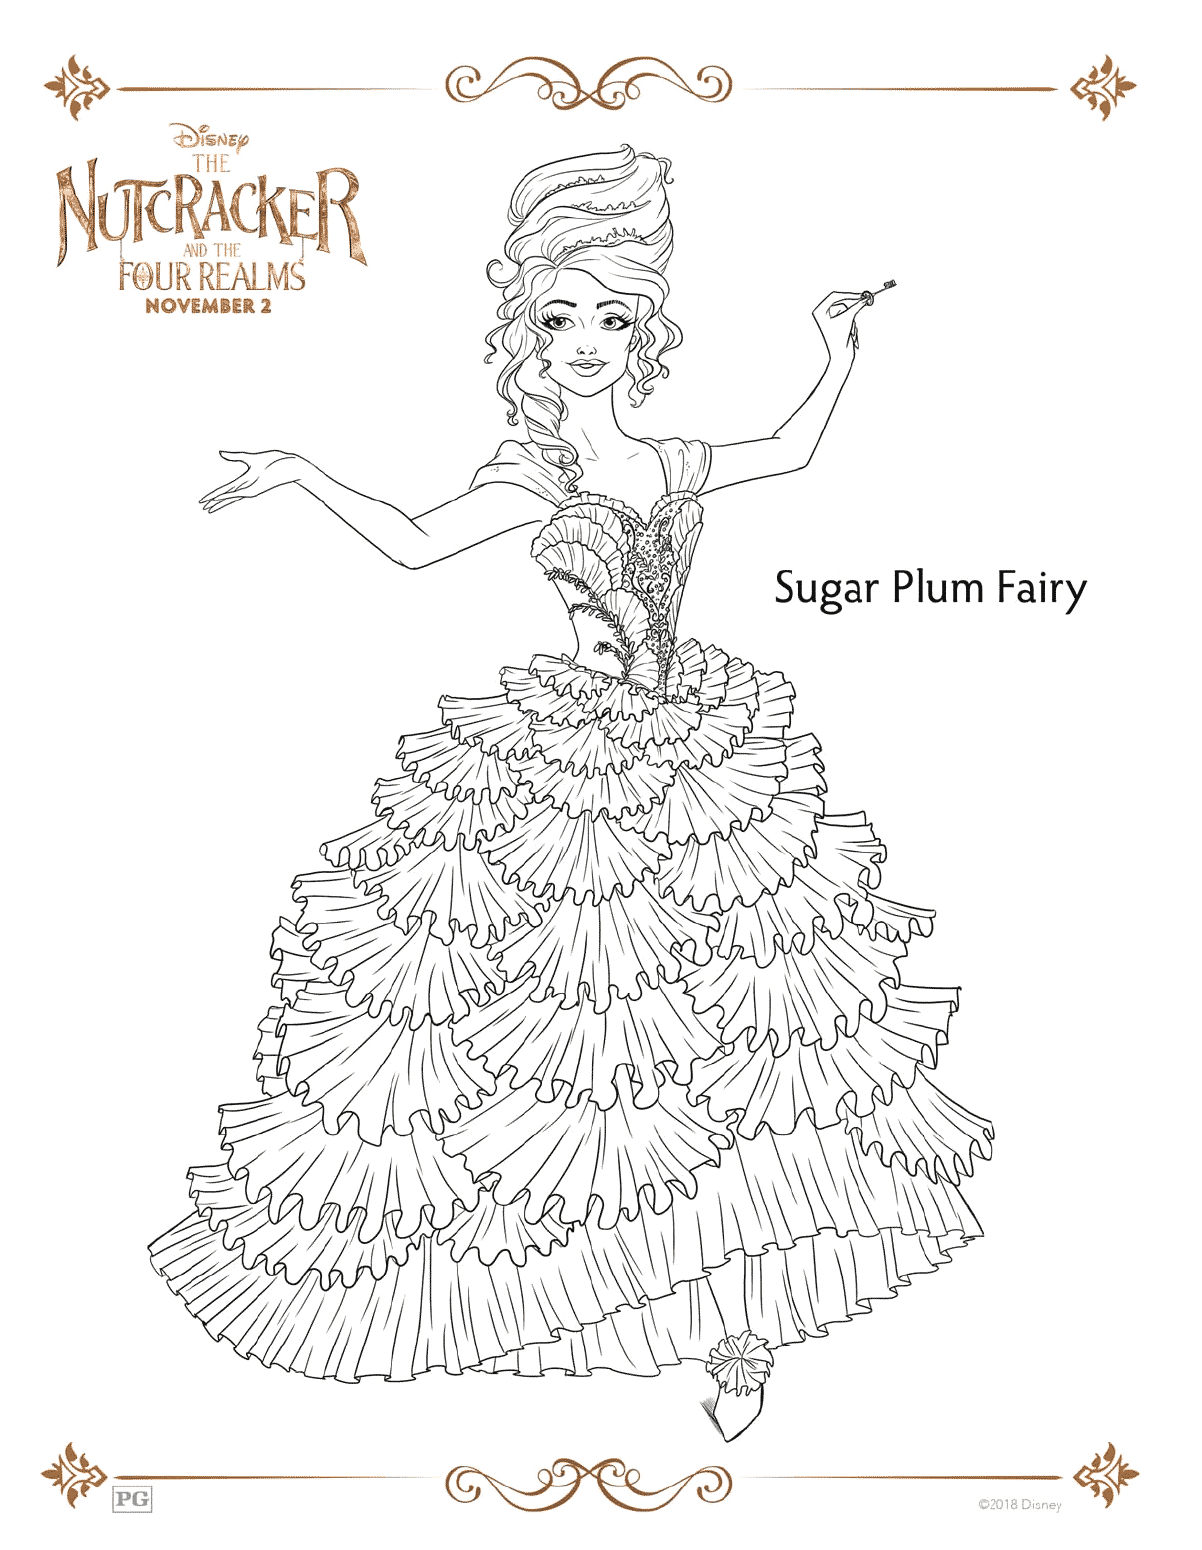 The Nutcracker and the Four Realms Coloring Pages the Nutcracker and the Four Realms Free Coloring Pages